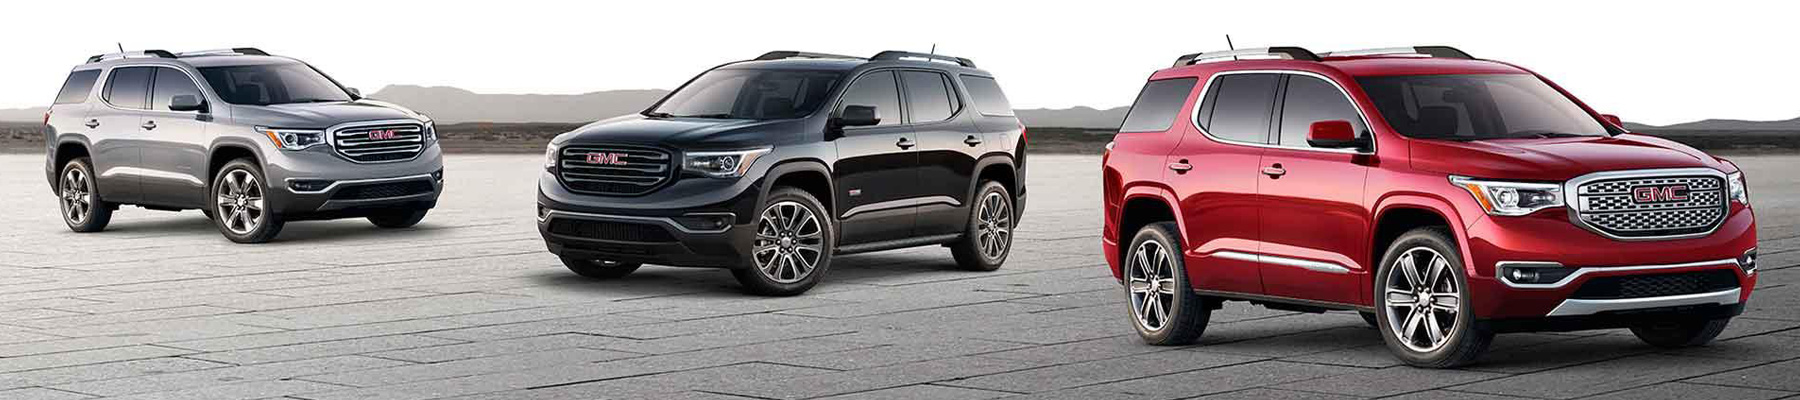 2017 GMC Acadia in Vancouver